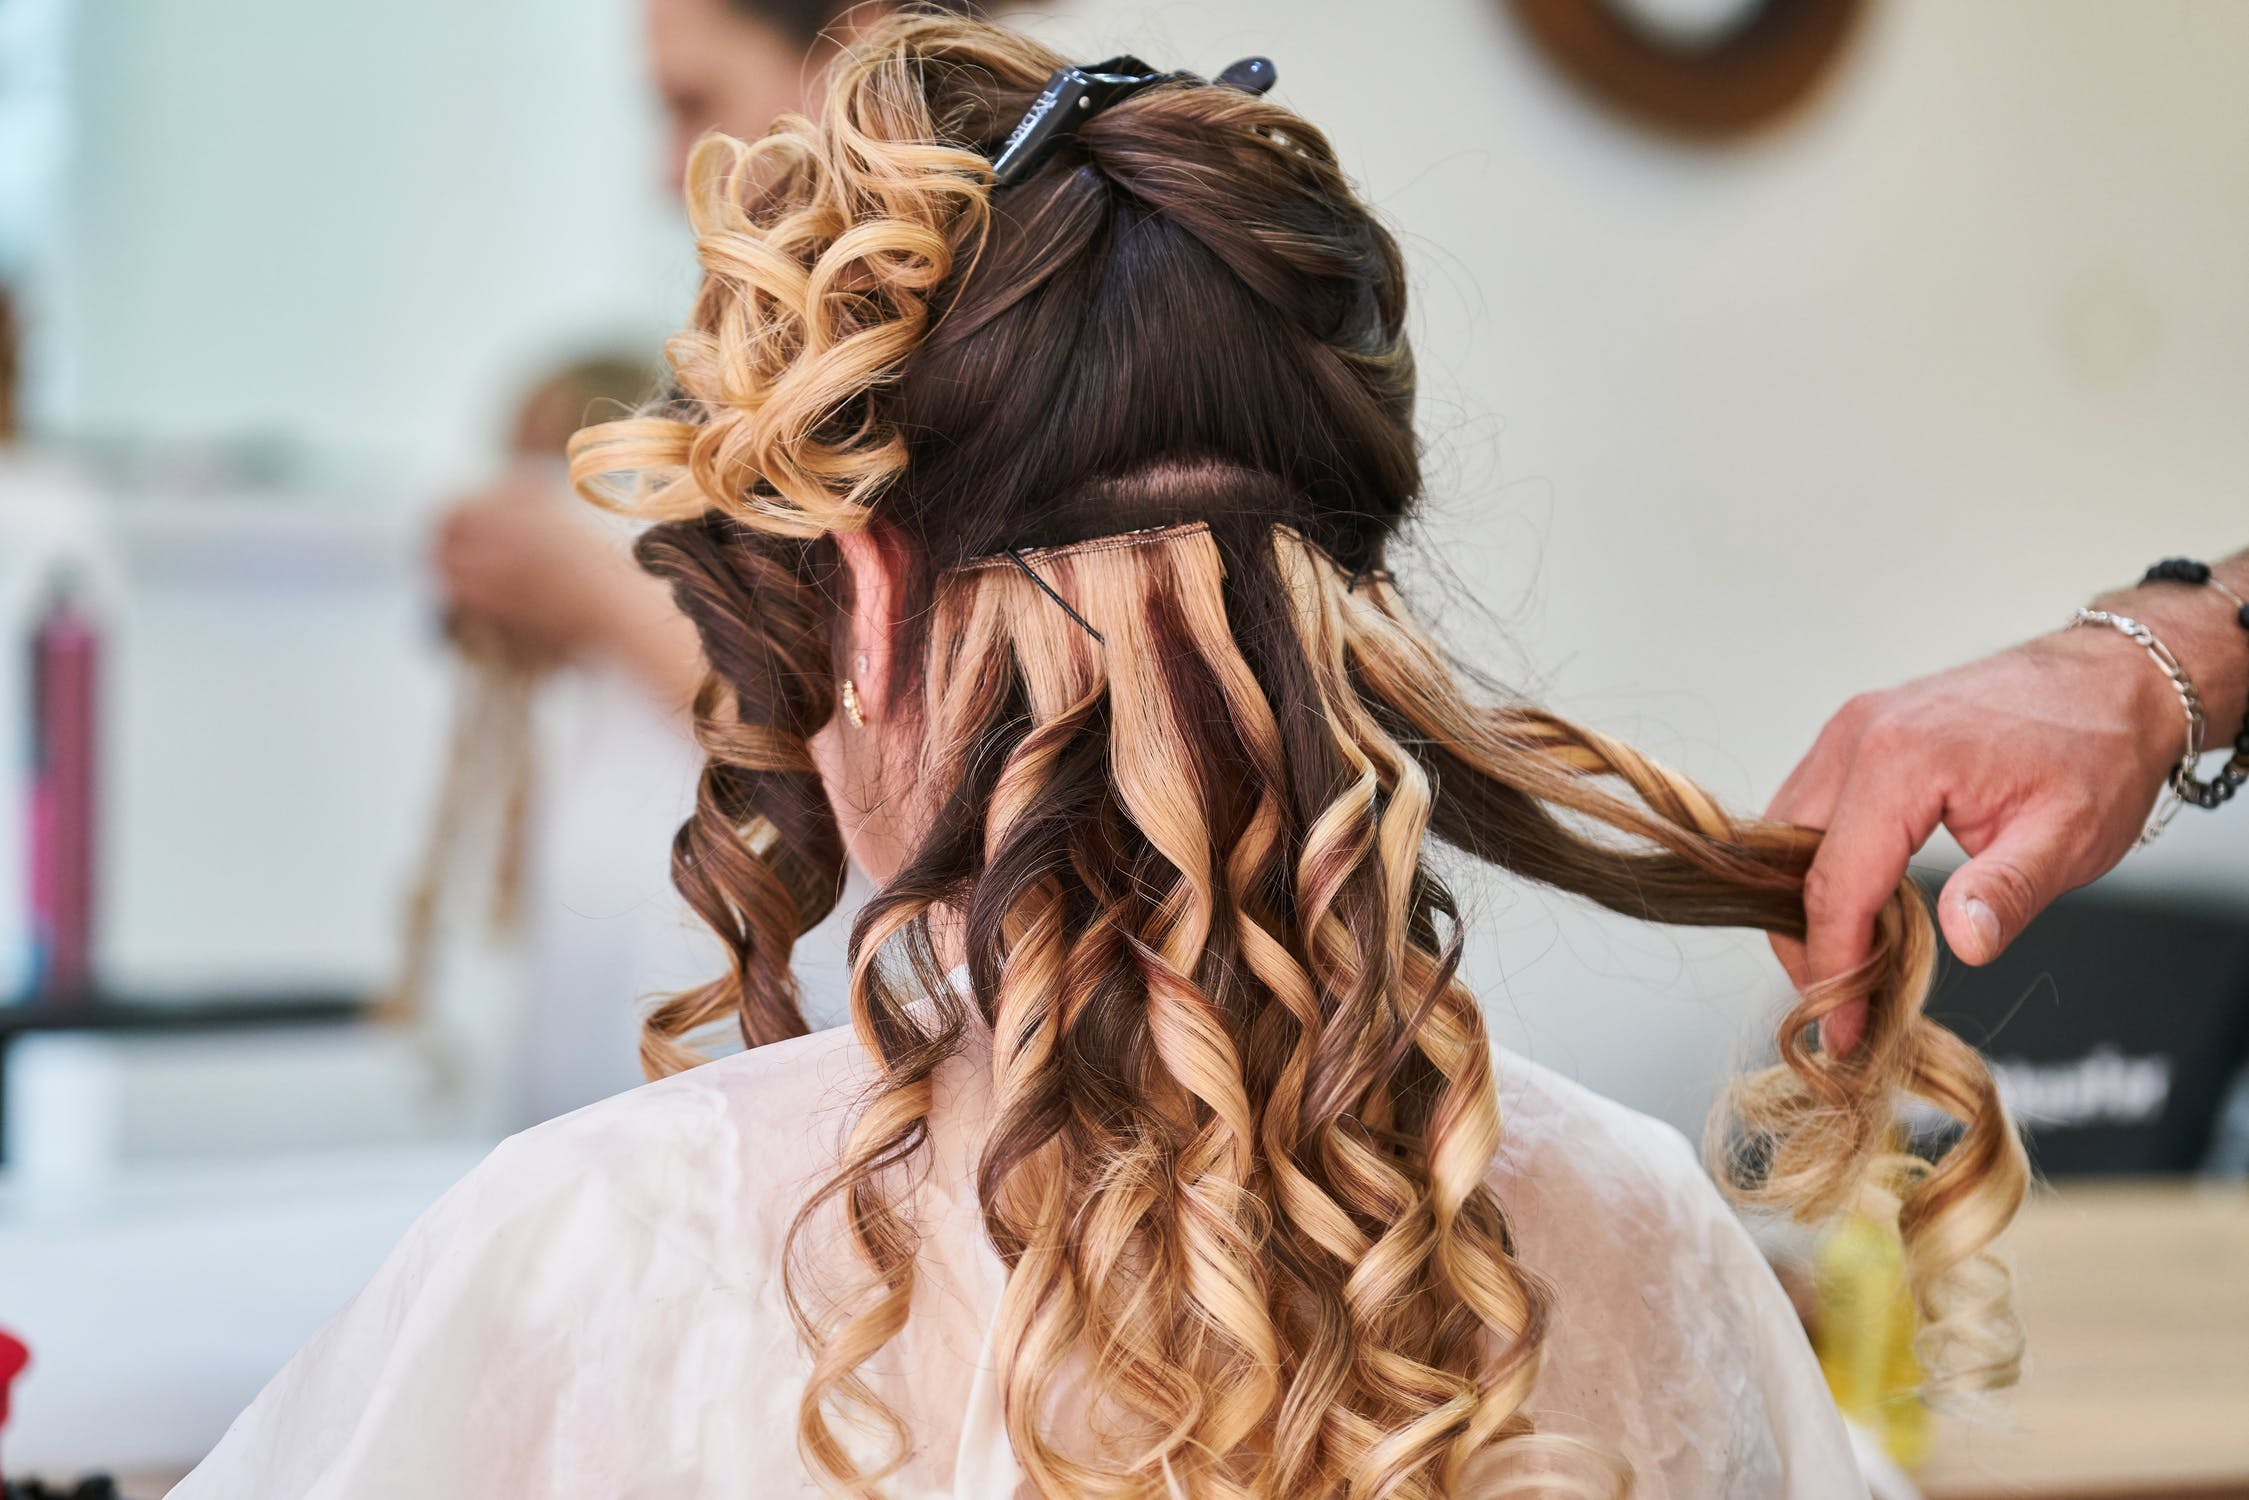 Styling a model's hair | Source: Pexels